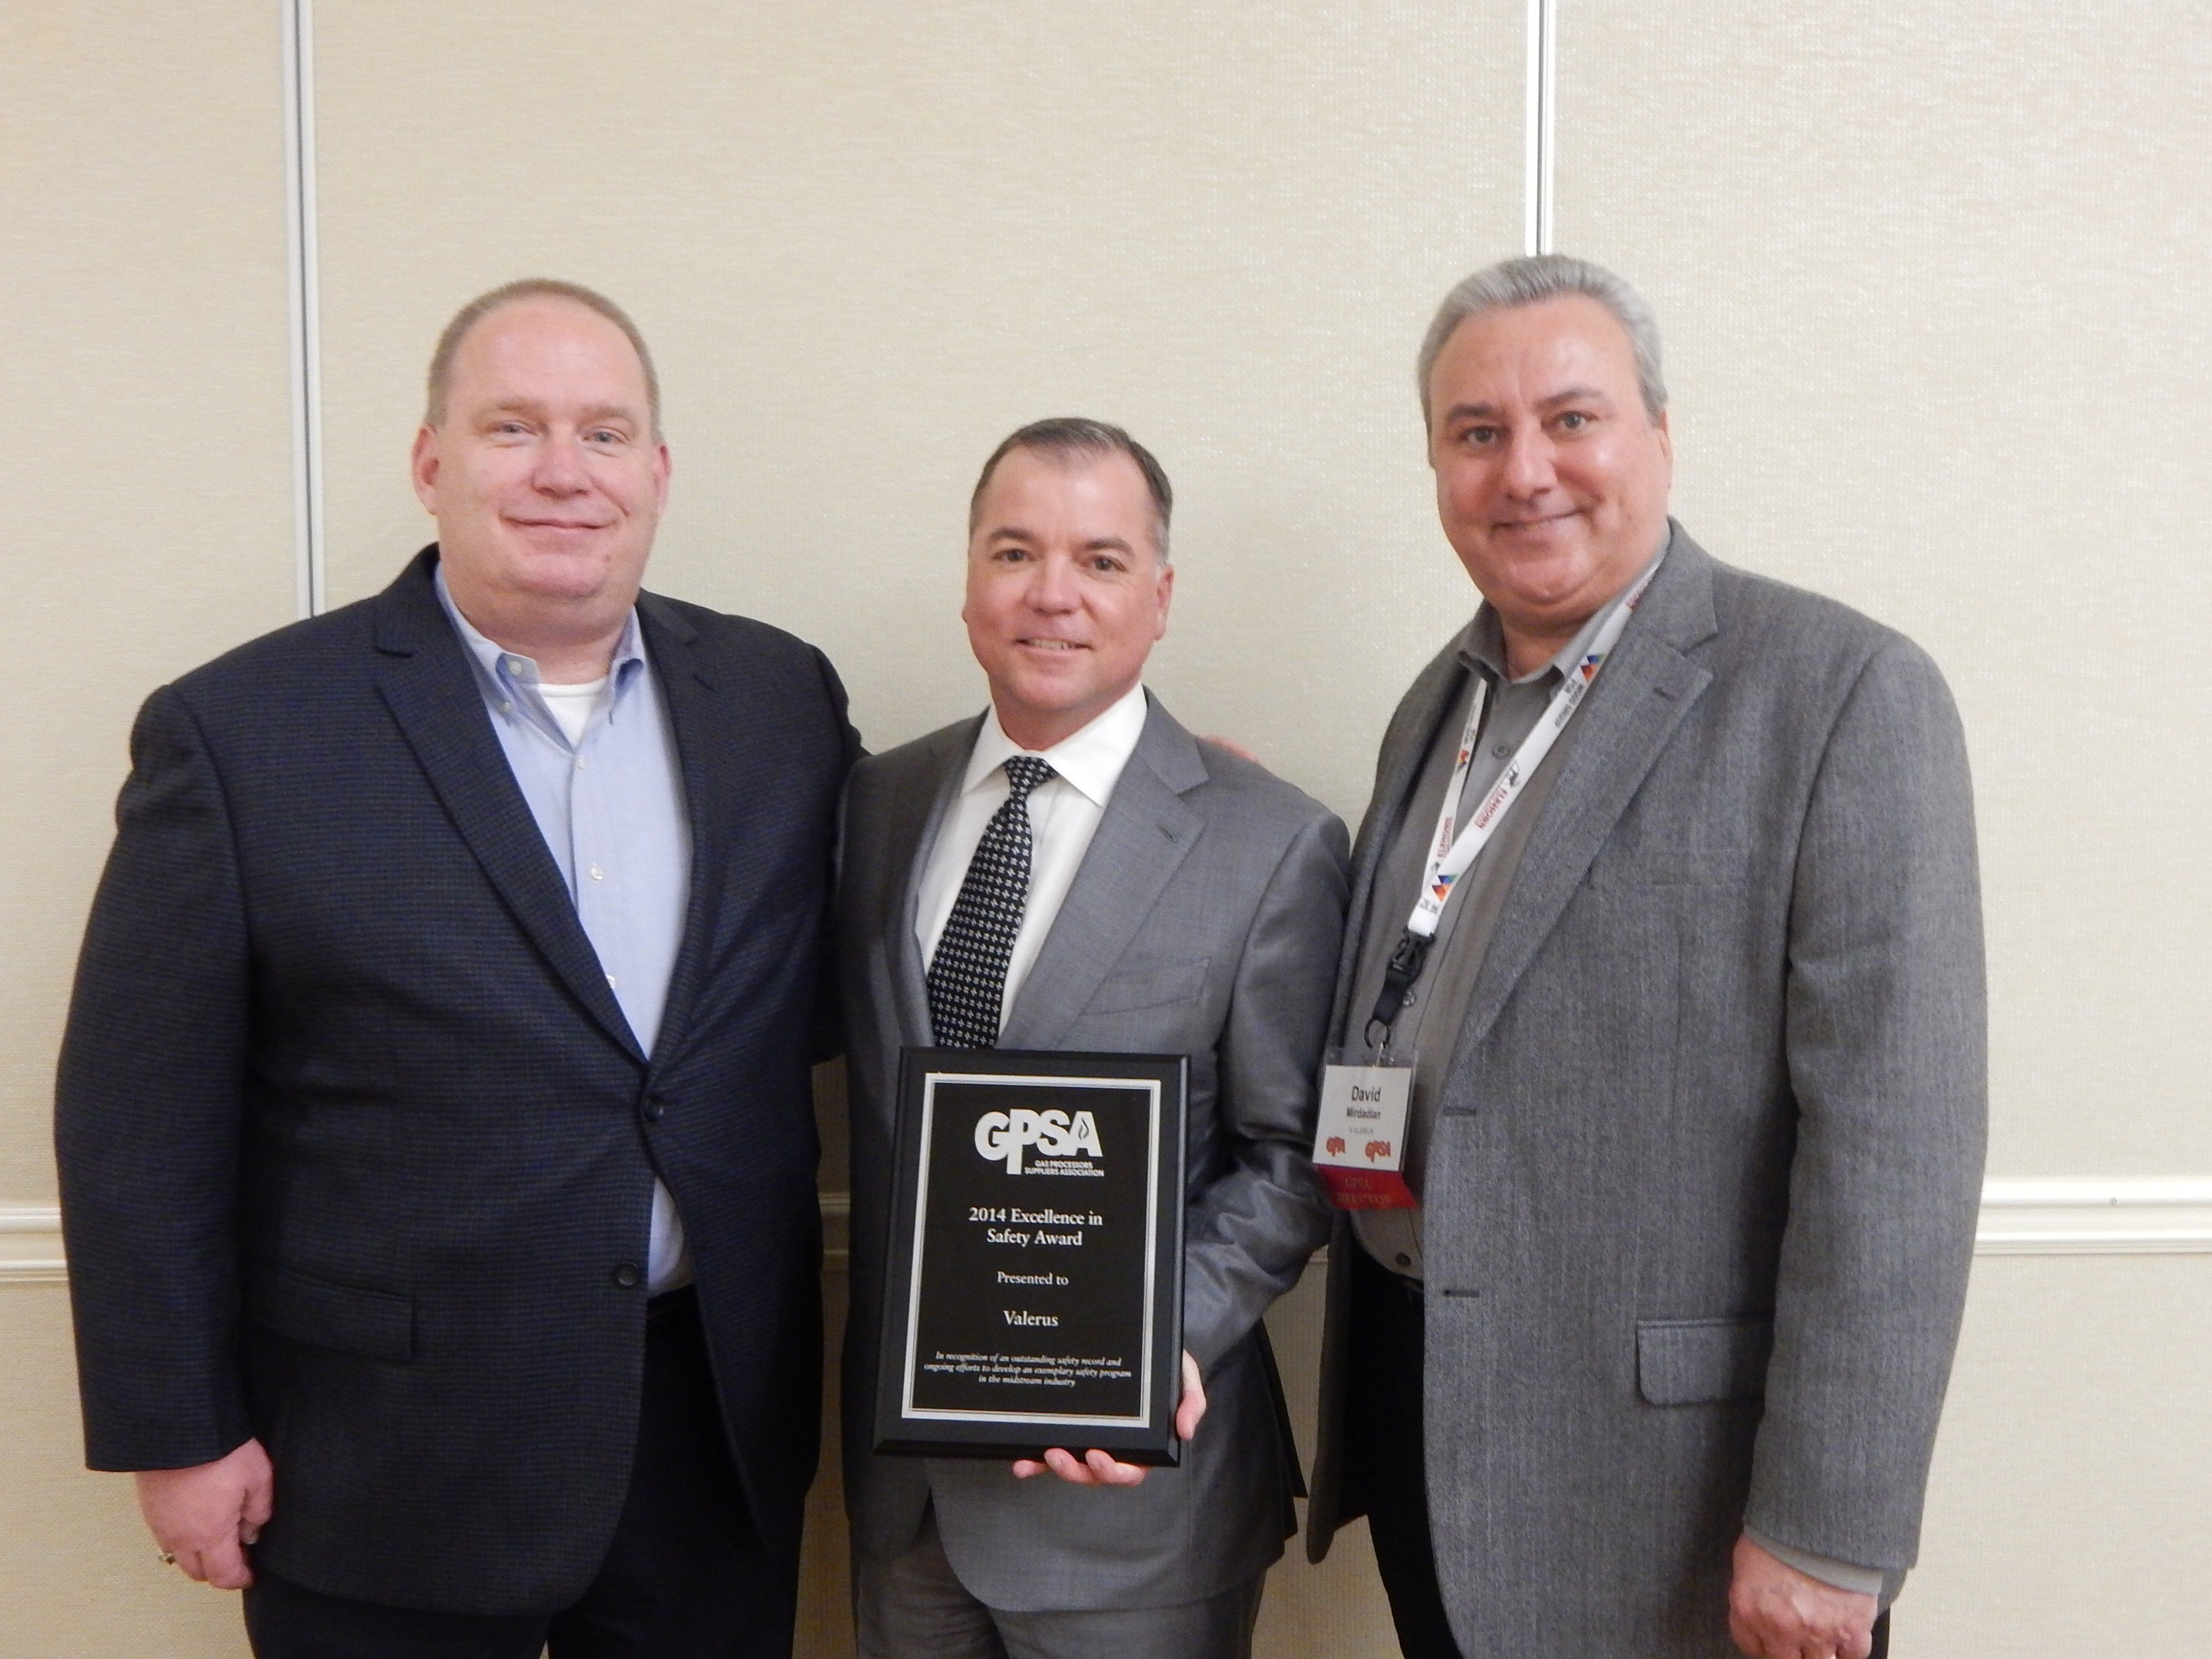 Valerus has been awarded a Gas Processors Suppliers Association Company Safety Award. Pictured from Valerus: Roger Lemke, Director of Health and Safety; Jim Gill, Chief Operating Officer; and David Mirdadian, Director of Business Development Processing and Treating.